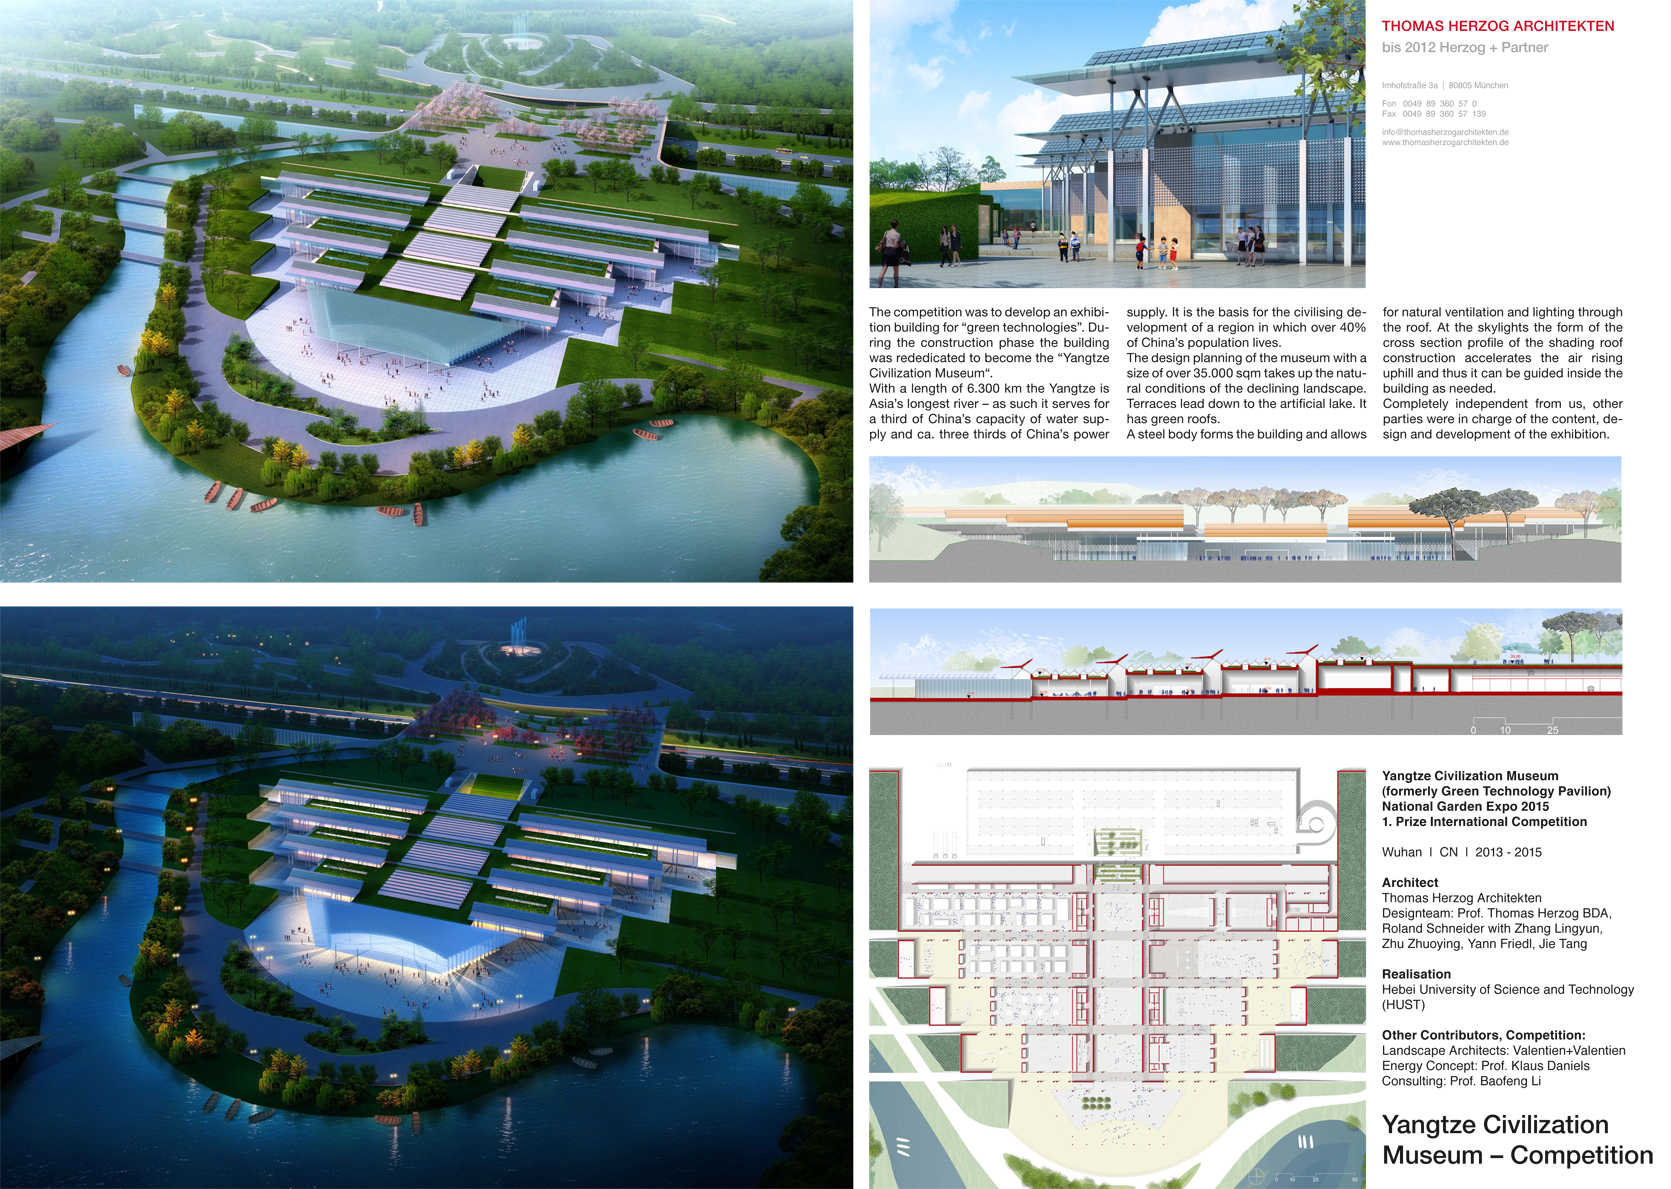 Yangtze Civilization Museum Competition: Green Technology Pavilion Wuhan CN 2015